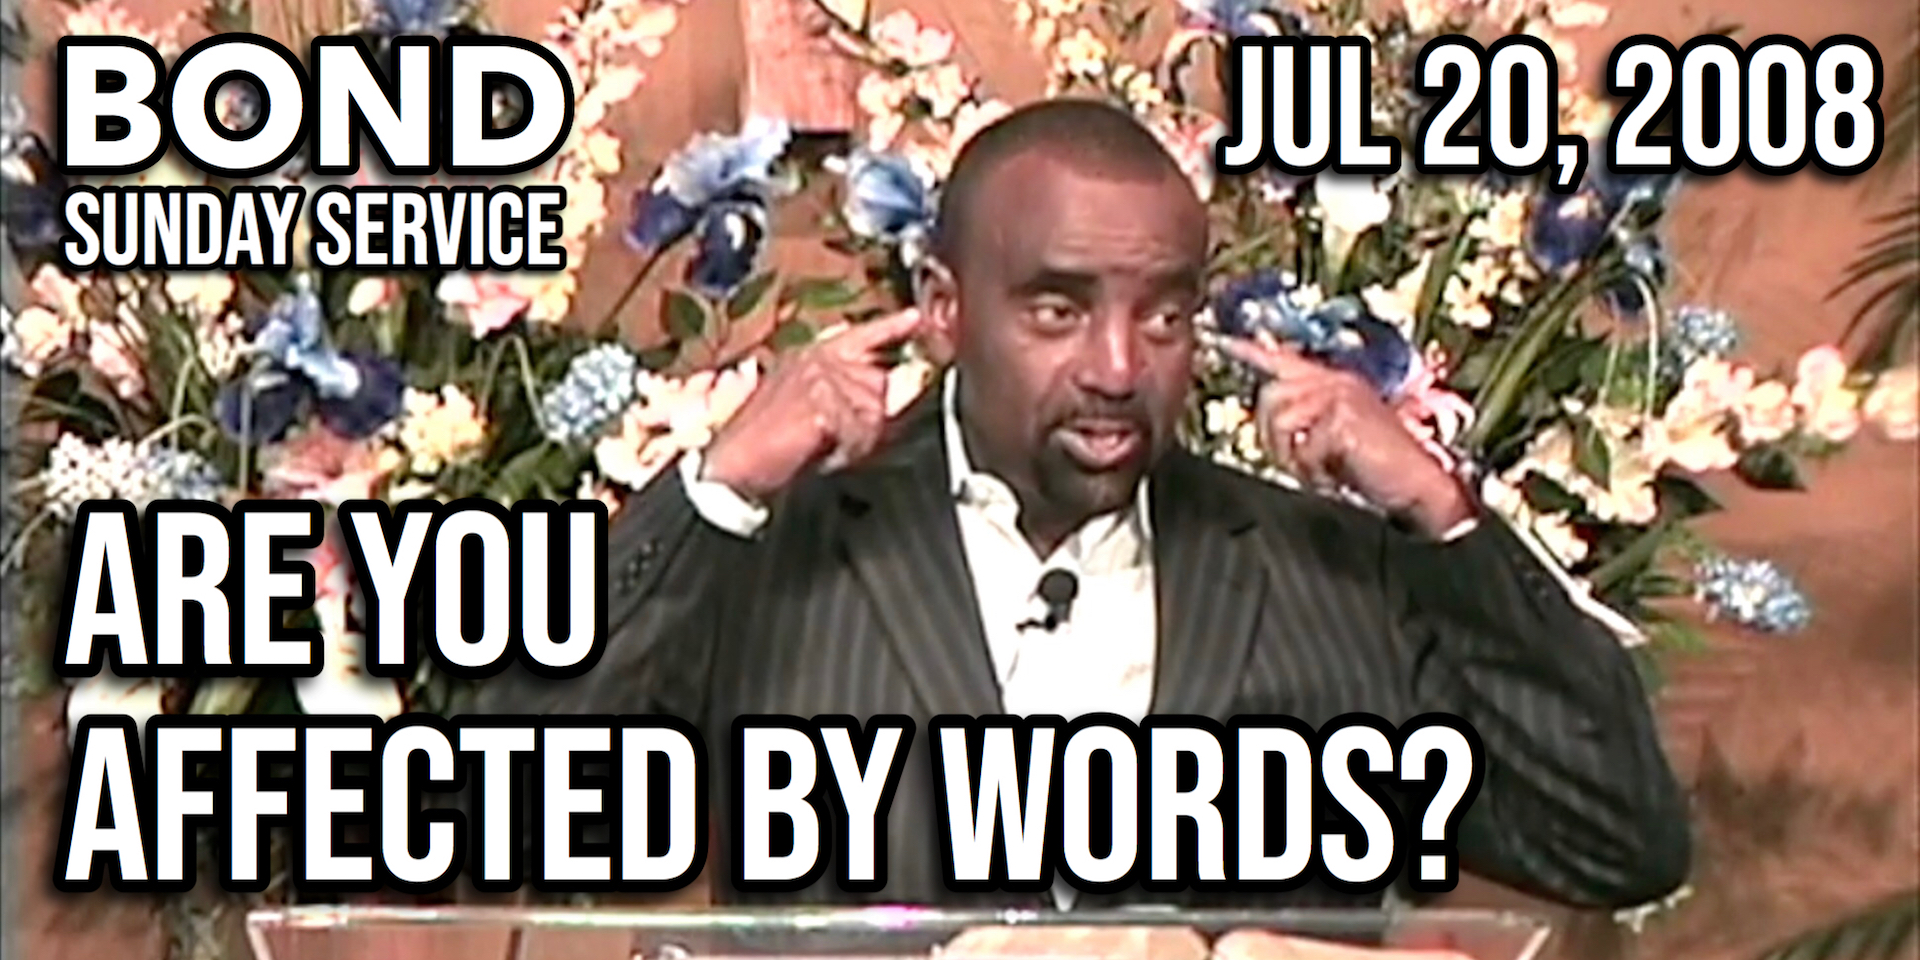 Are You Affected by Words? (Sunday Service, July 20, 2008)